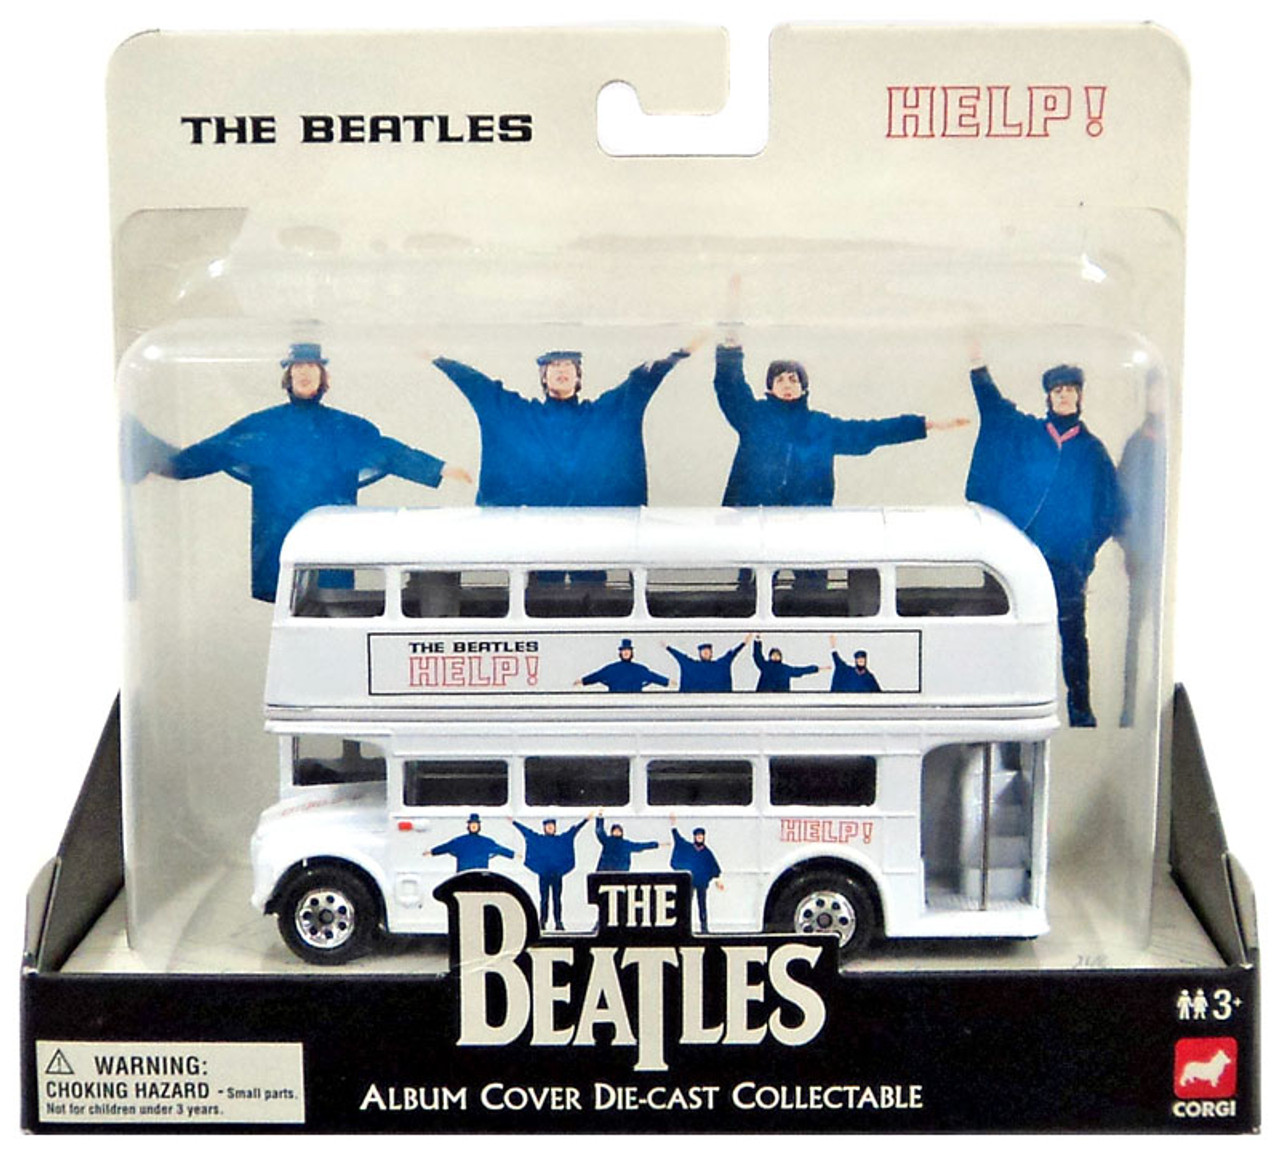 The Beatles Album Cover Collectable HELP Die-Cast Vehicle